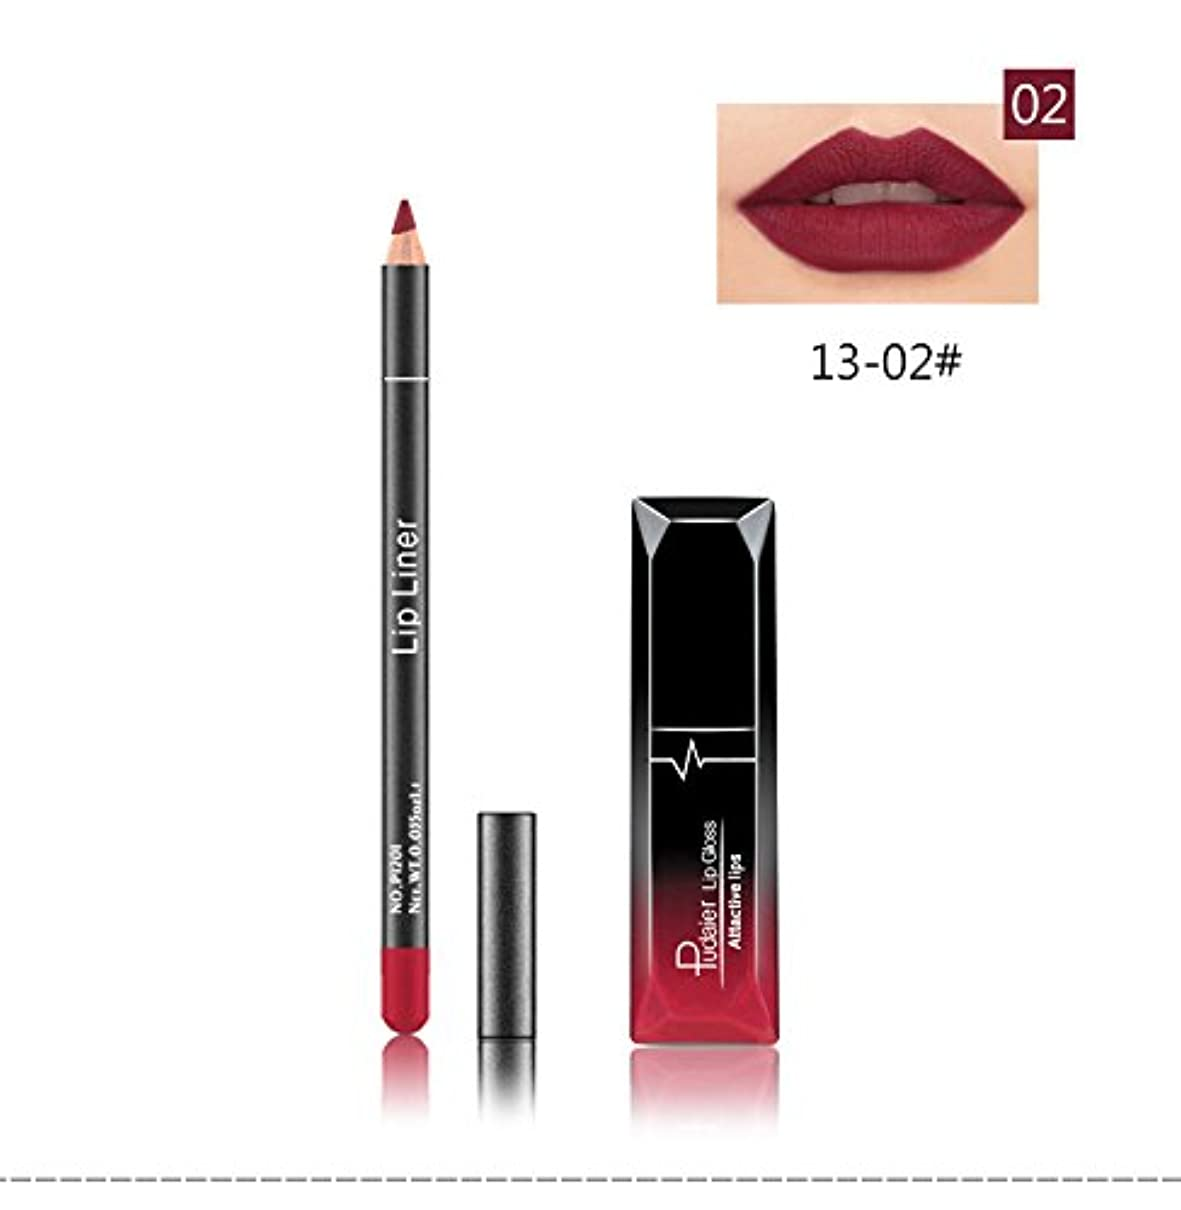 グローブ散るに(02) Pudaier 1pc Matte Liquid Lipstick Cosmetic Lip Kit+ 1 Pc Nude Lip Liner Pencil MakeUp Set Waterproof Long Lasting Lipstick Gfit